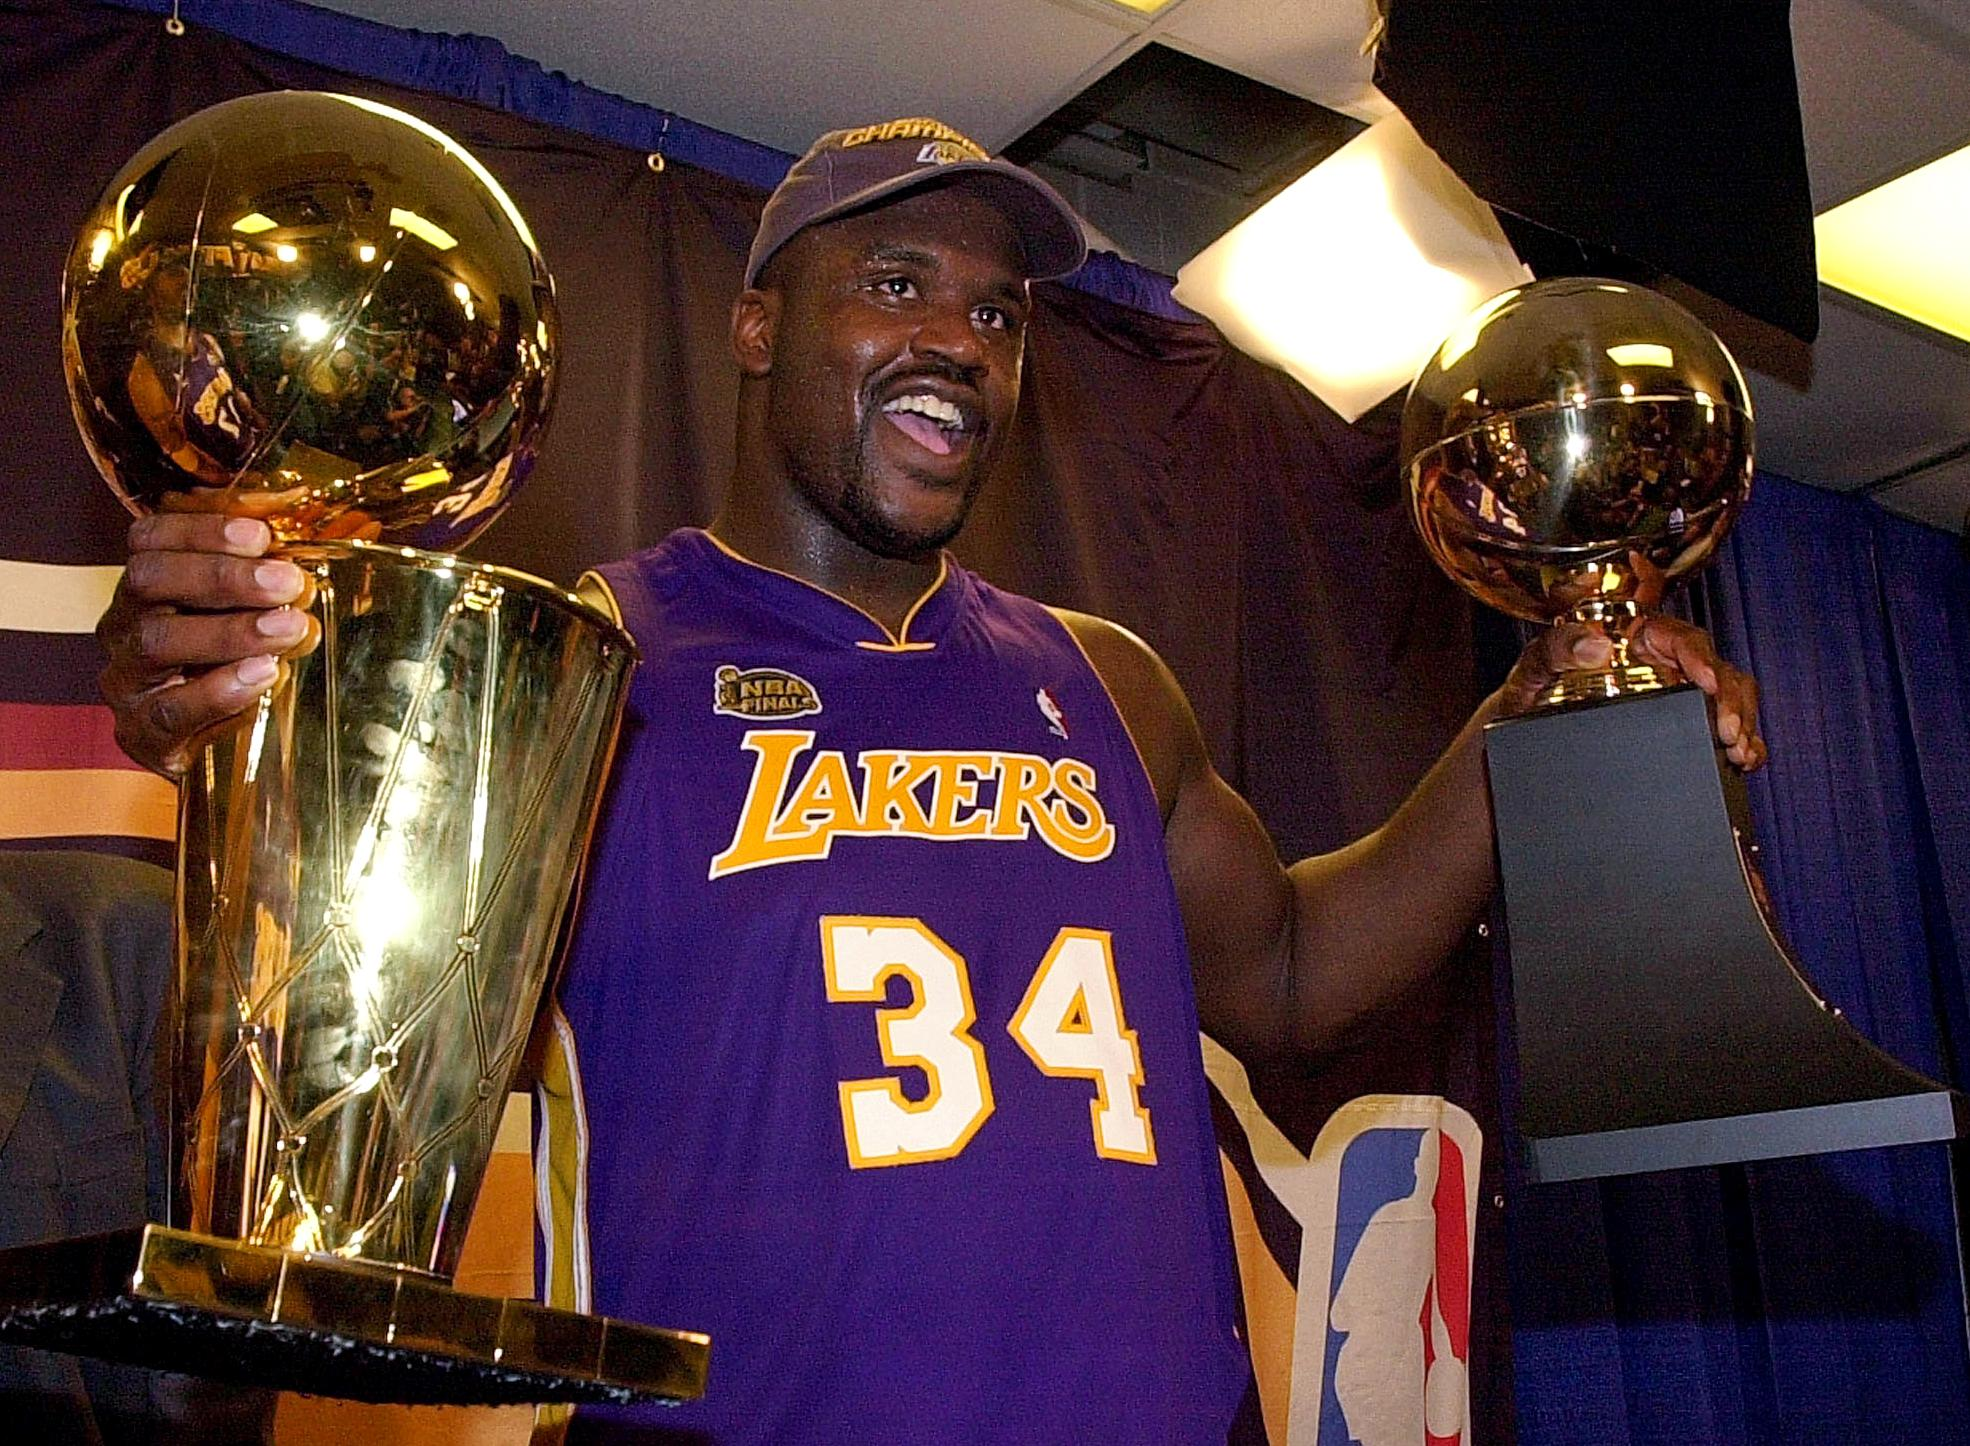 Daisy Iphone Wallpaper Shaquille Oneal Wallpapers Pictures Images